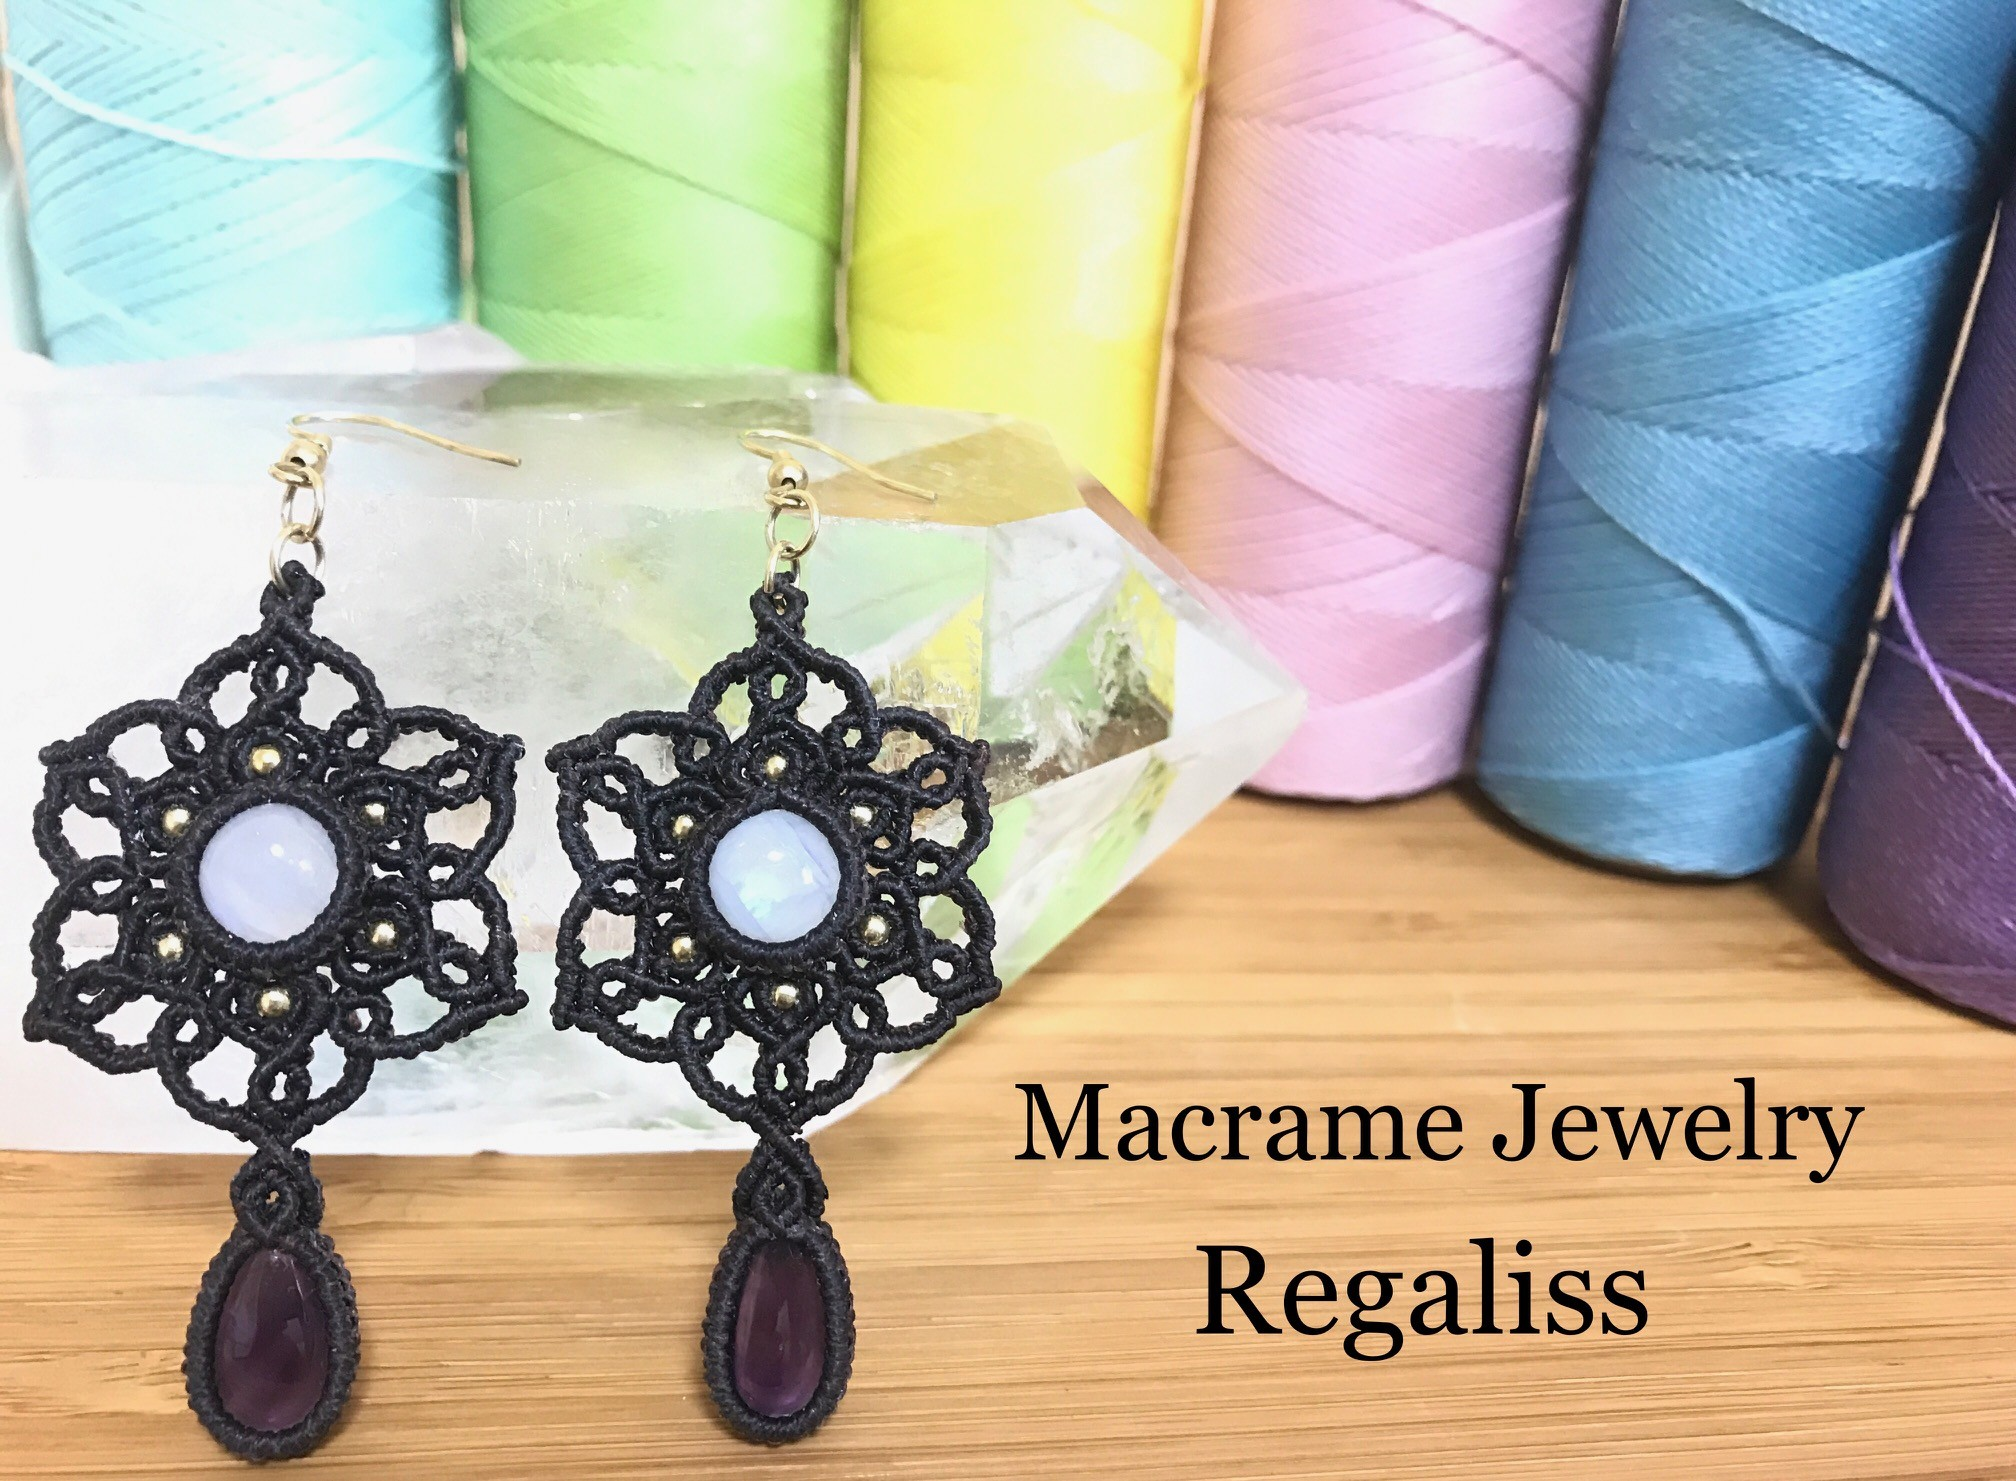 Macrame Jewelry Regaliss - レガリス -